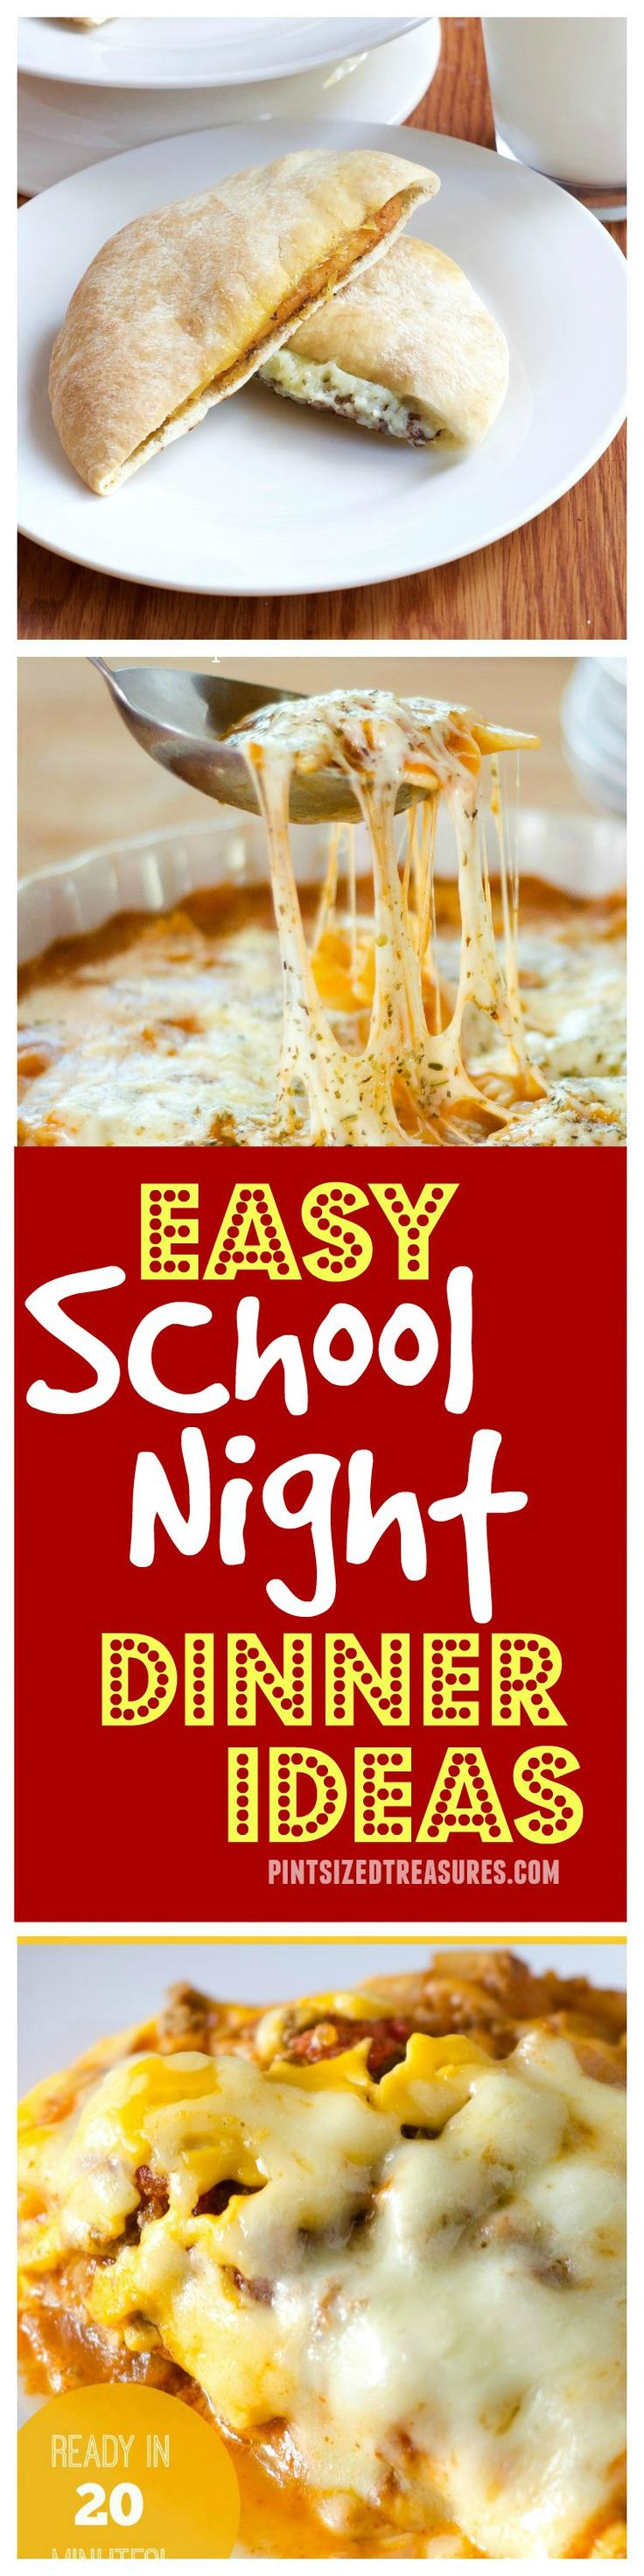 Enjoy a stress-free week with these easy after school dinner ideas that your kids will LOVE! AD ReallyReallyTasty @alicanwrite